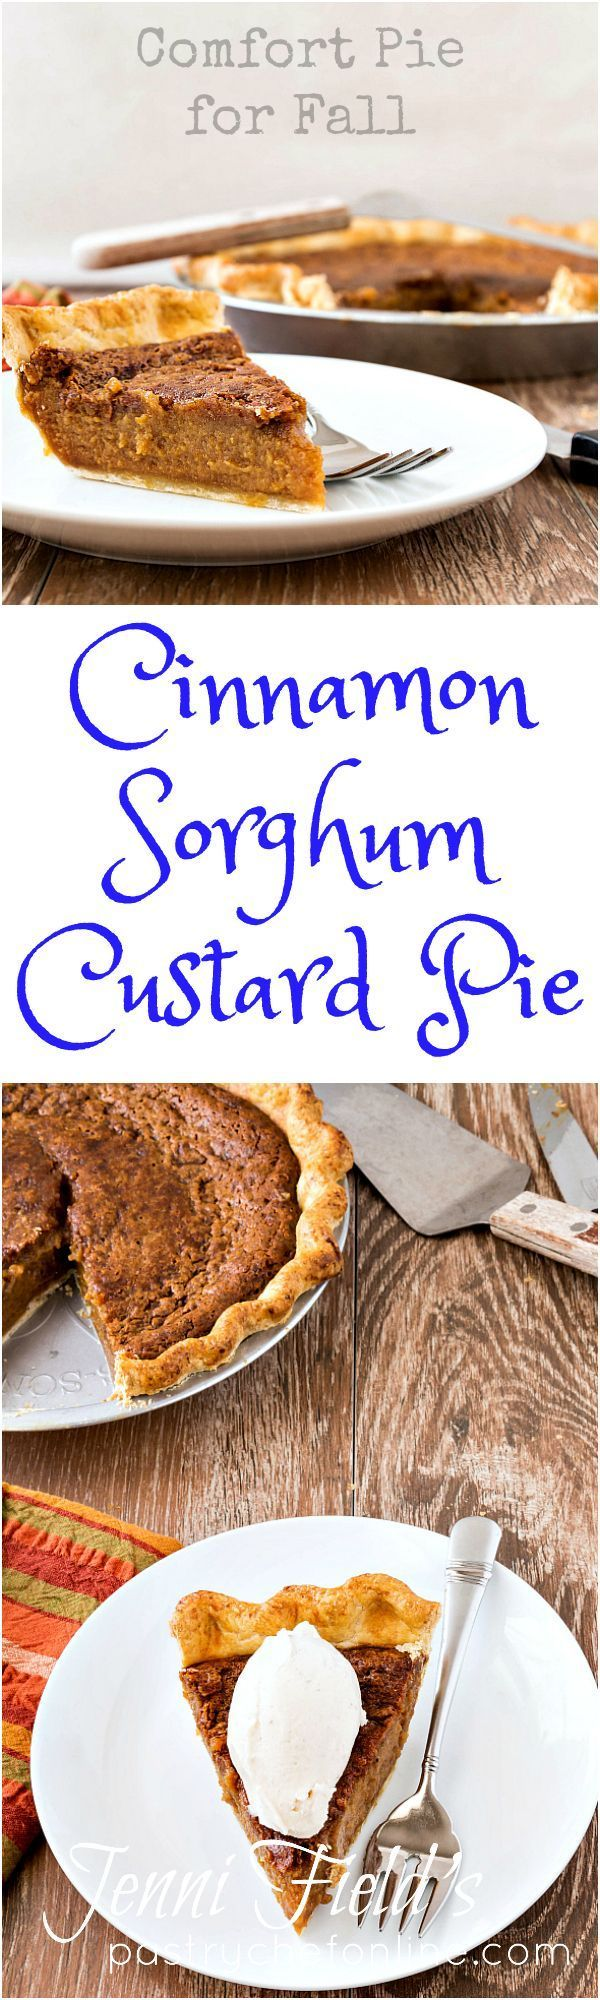 Cinnamon Sorghum Custard Pie is a comforting fall pie that is easy to make using pantry staples most of you have on hand. Sorghum syrup is worth seeking out. Consider this an alternative to pumpkin pie or pecan pie for Thanksgiving dessert, too. | http://